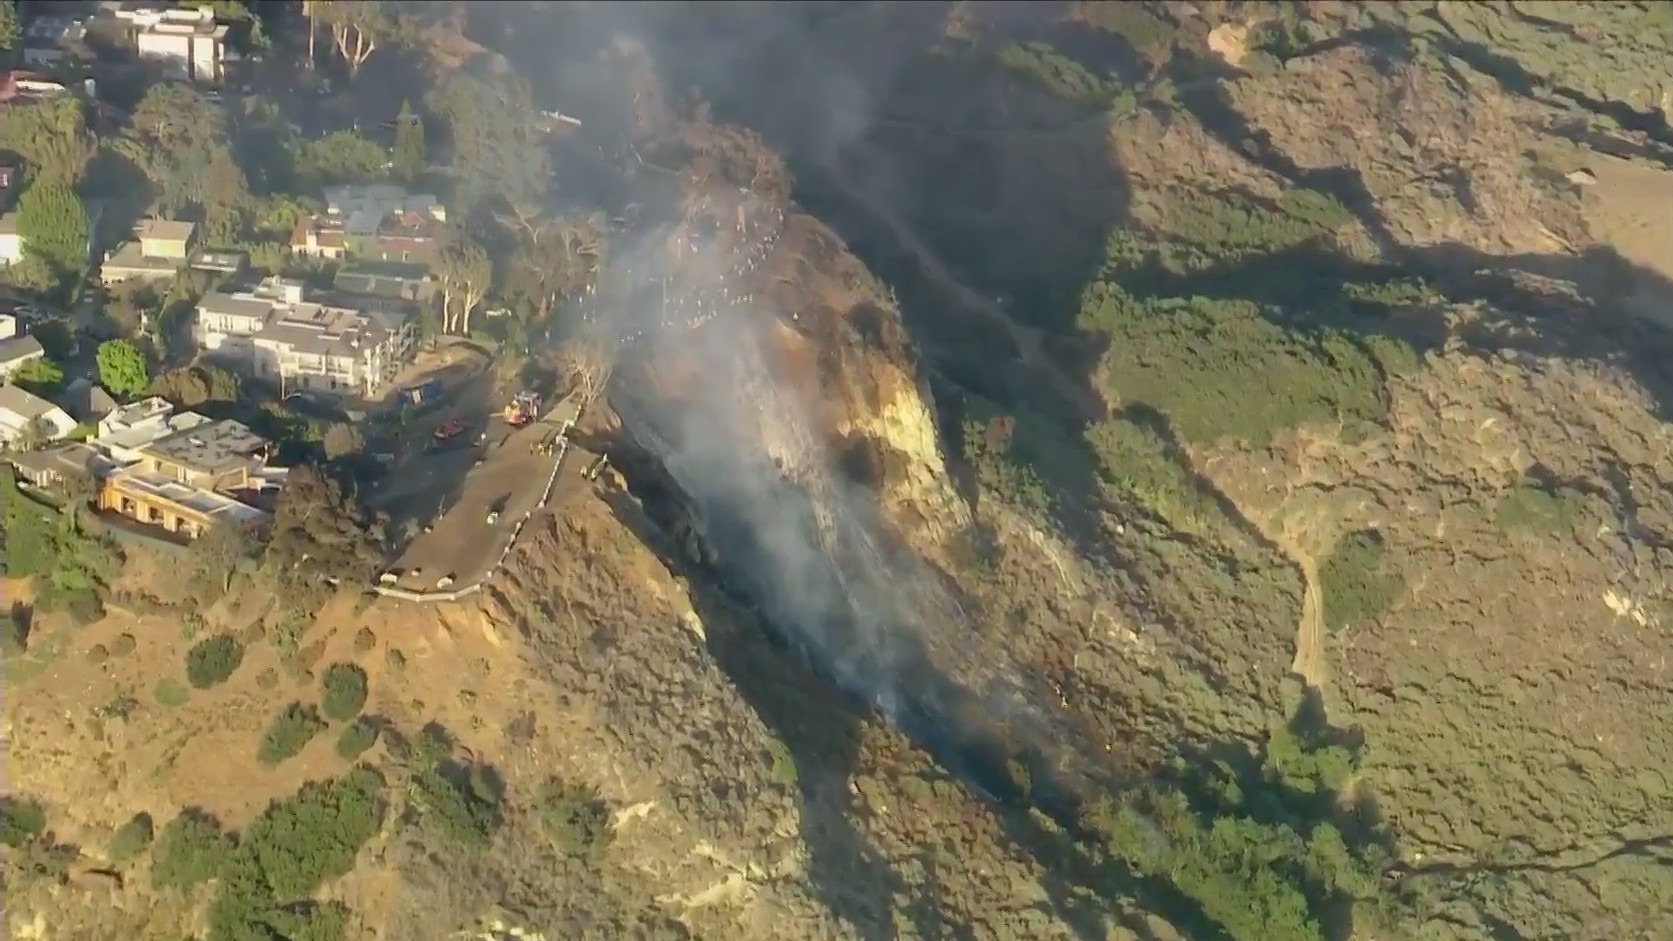 Firefighters work to fully extinguish a brush fire that broke out along Highway 1 in Pacific Palisades on May 24, 2021. (KTLA)